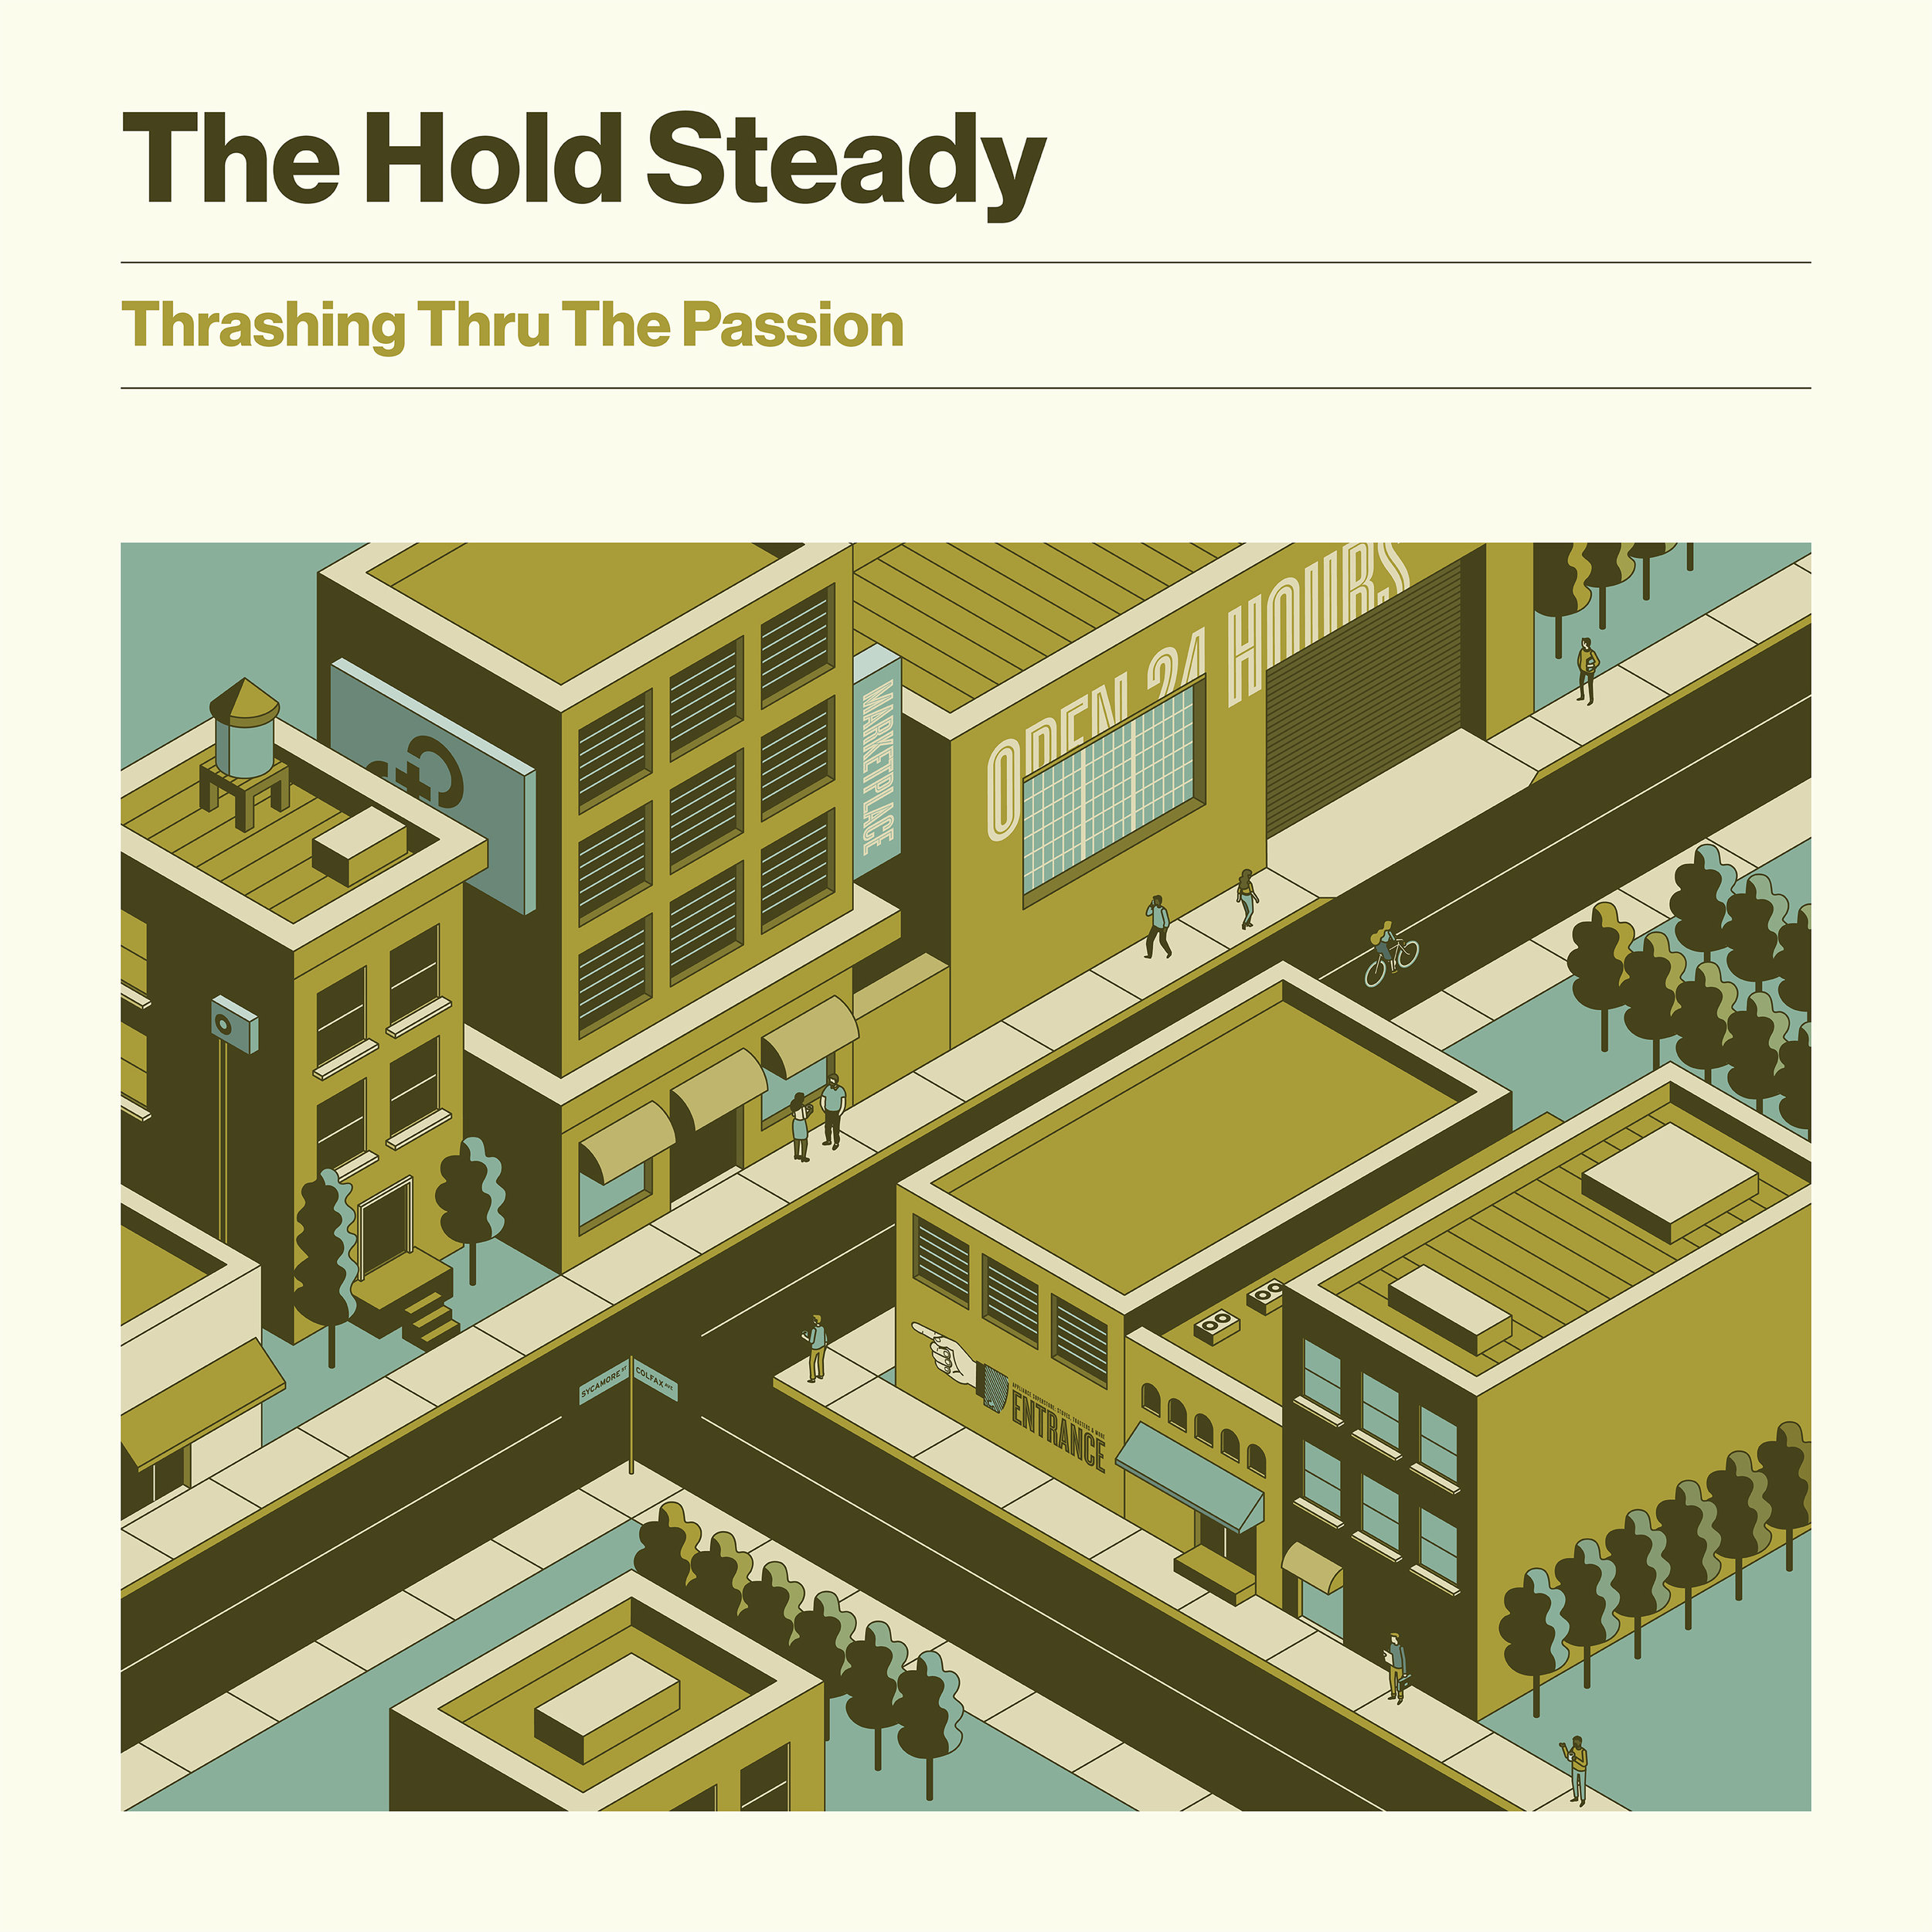 THE HOLD STEADY   THRASHING THRU THE PASSION    Listen HERE